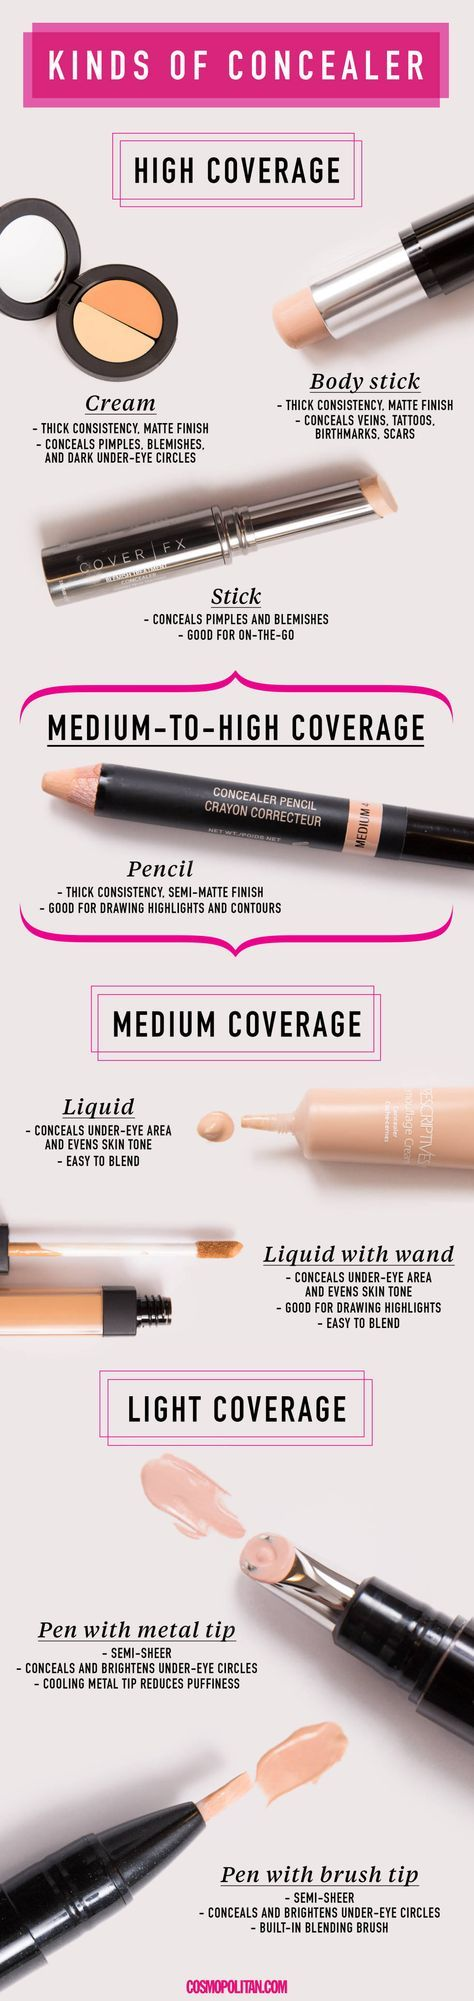 Keep more than just one kind of concealer in your makeup bag.  Unless you were born with flawless skin (aka you're Beyoncè), you'll need to use different kinds of concealer for different areas of your face, depending on how much coverage you need.